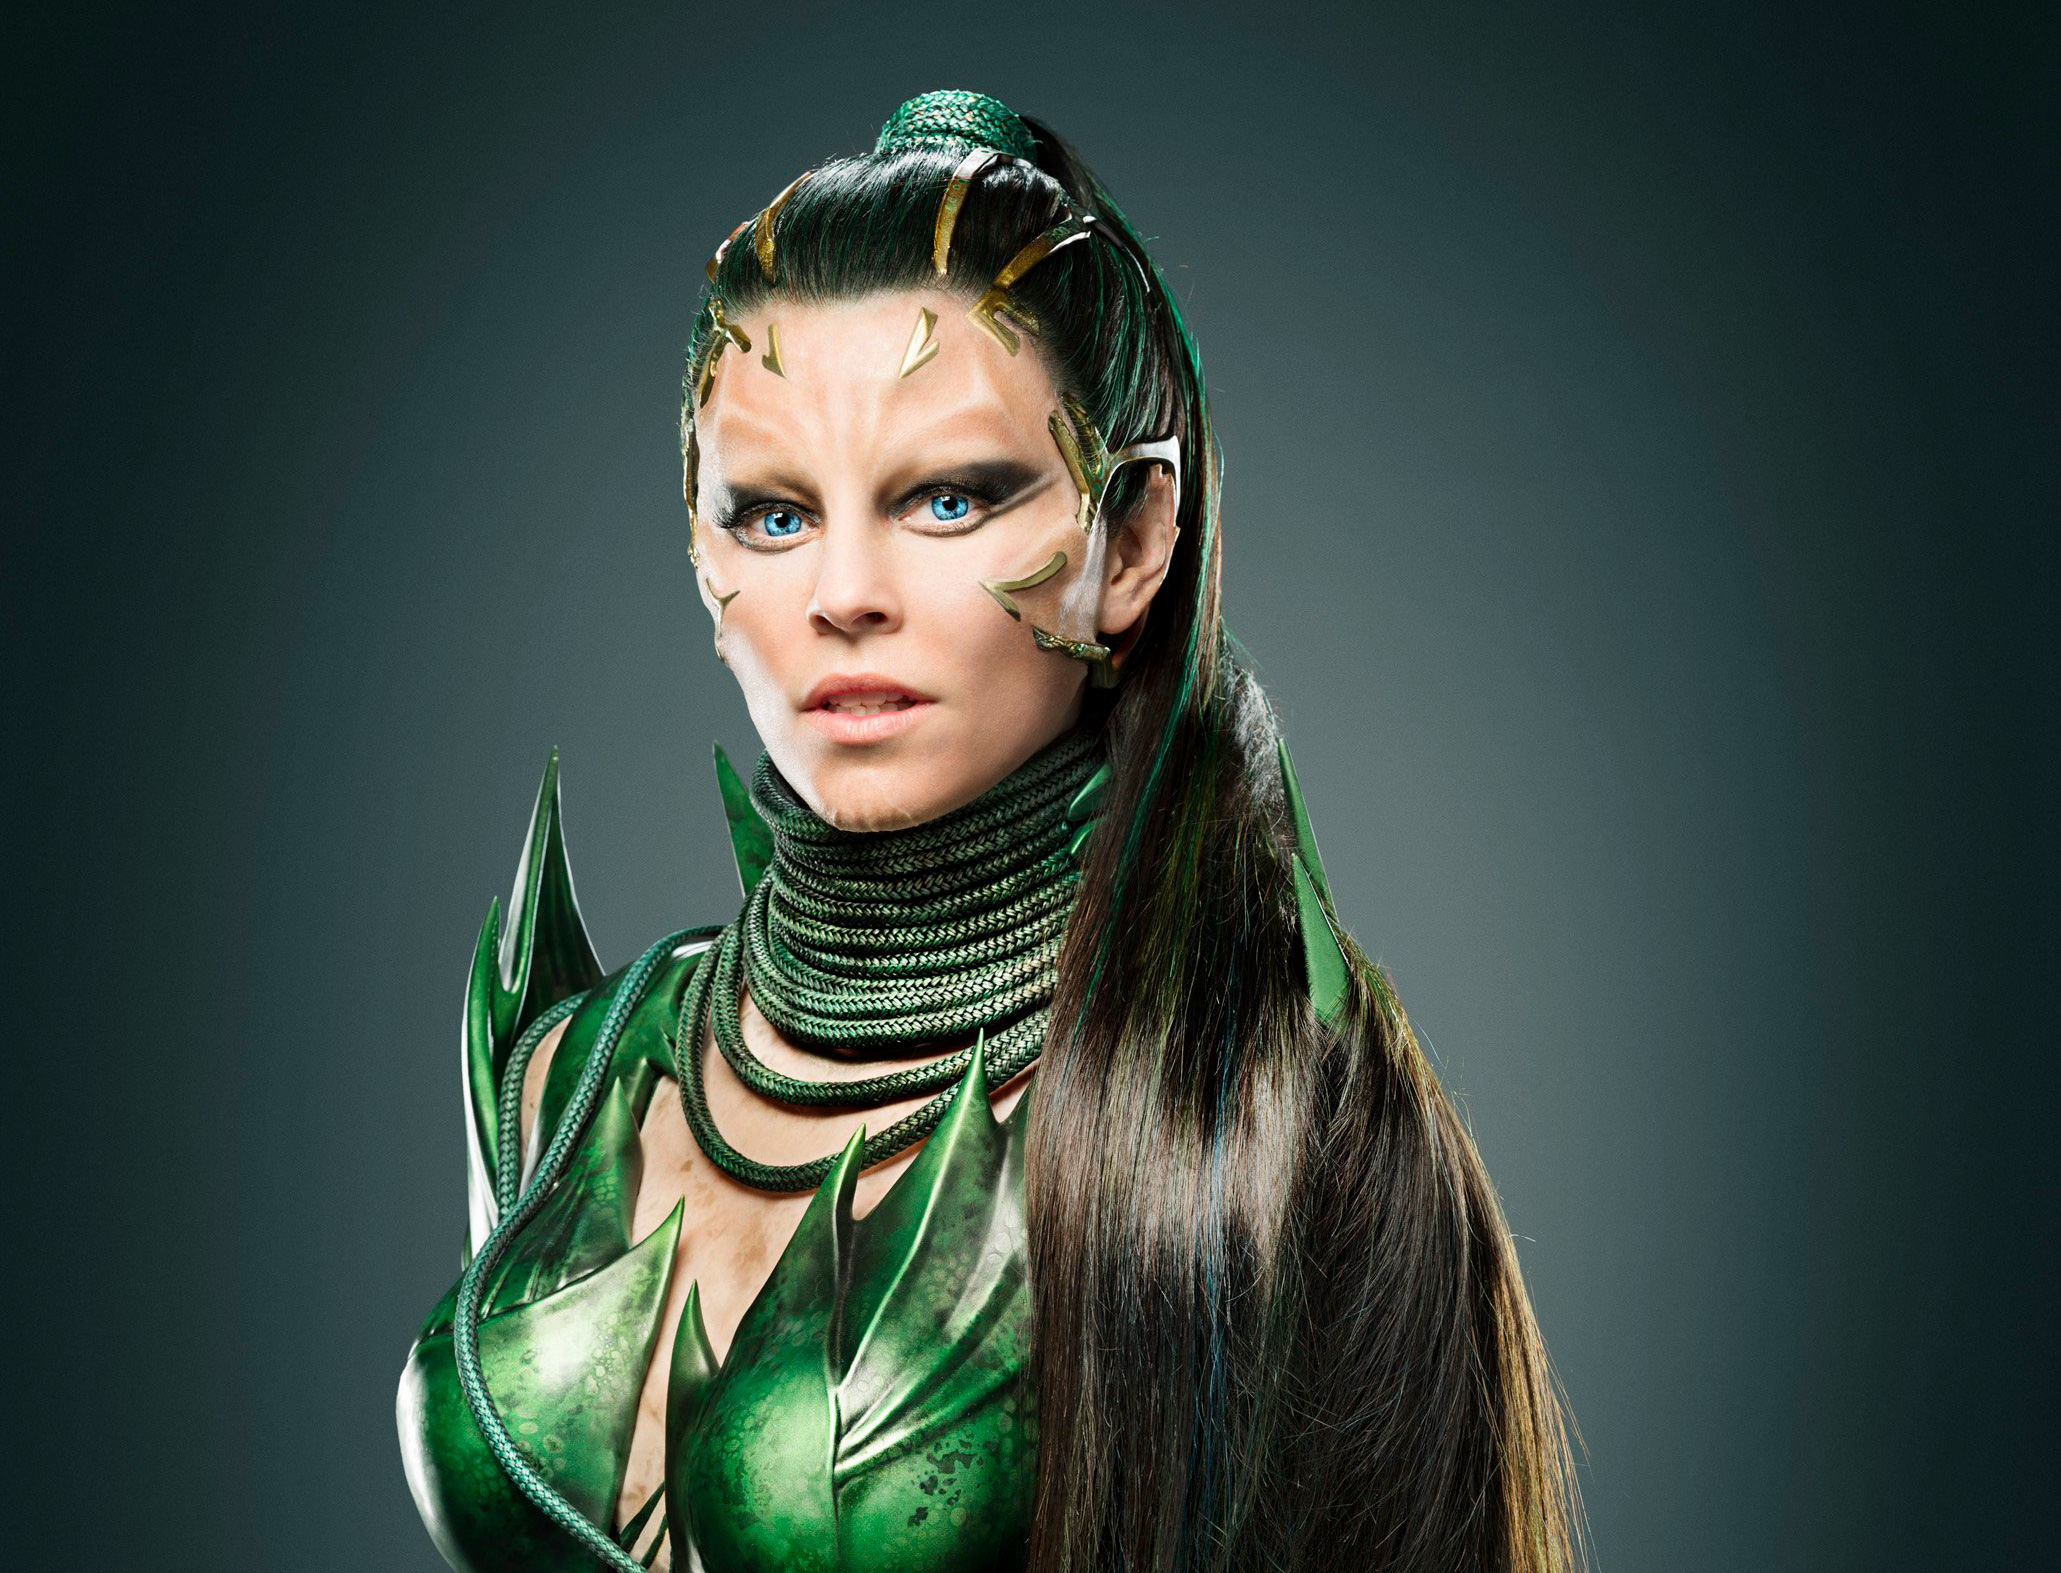 Rita Repulsa/2017 movie